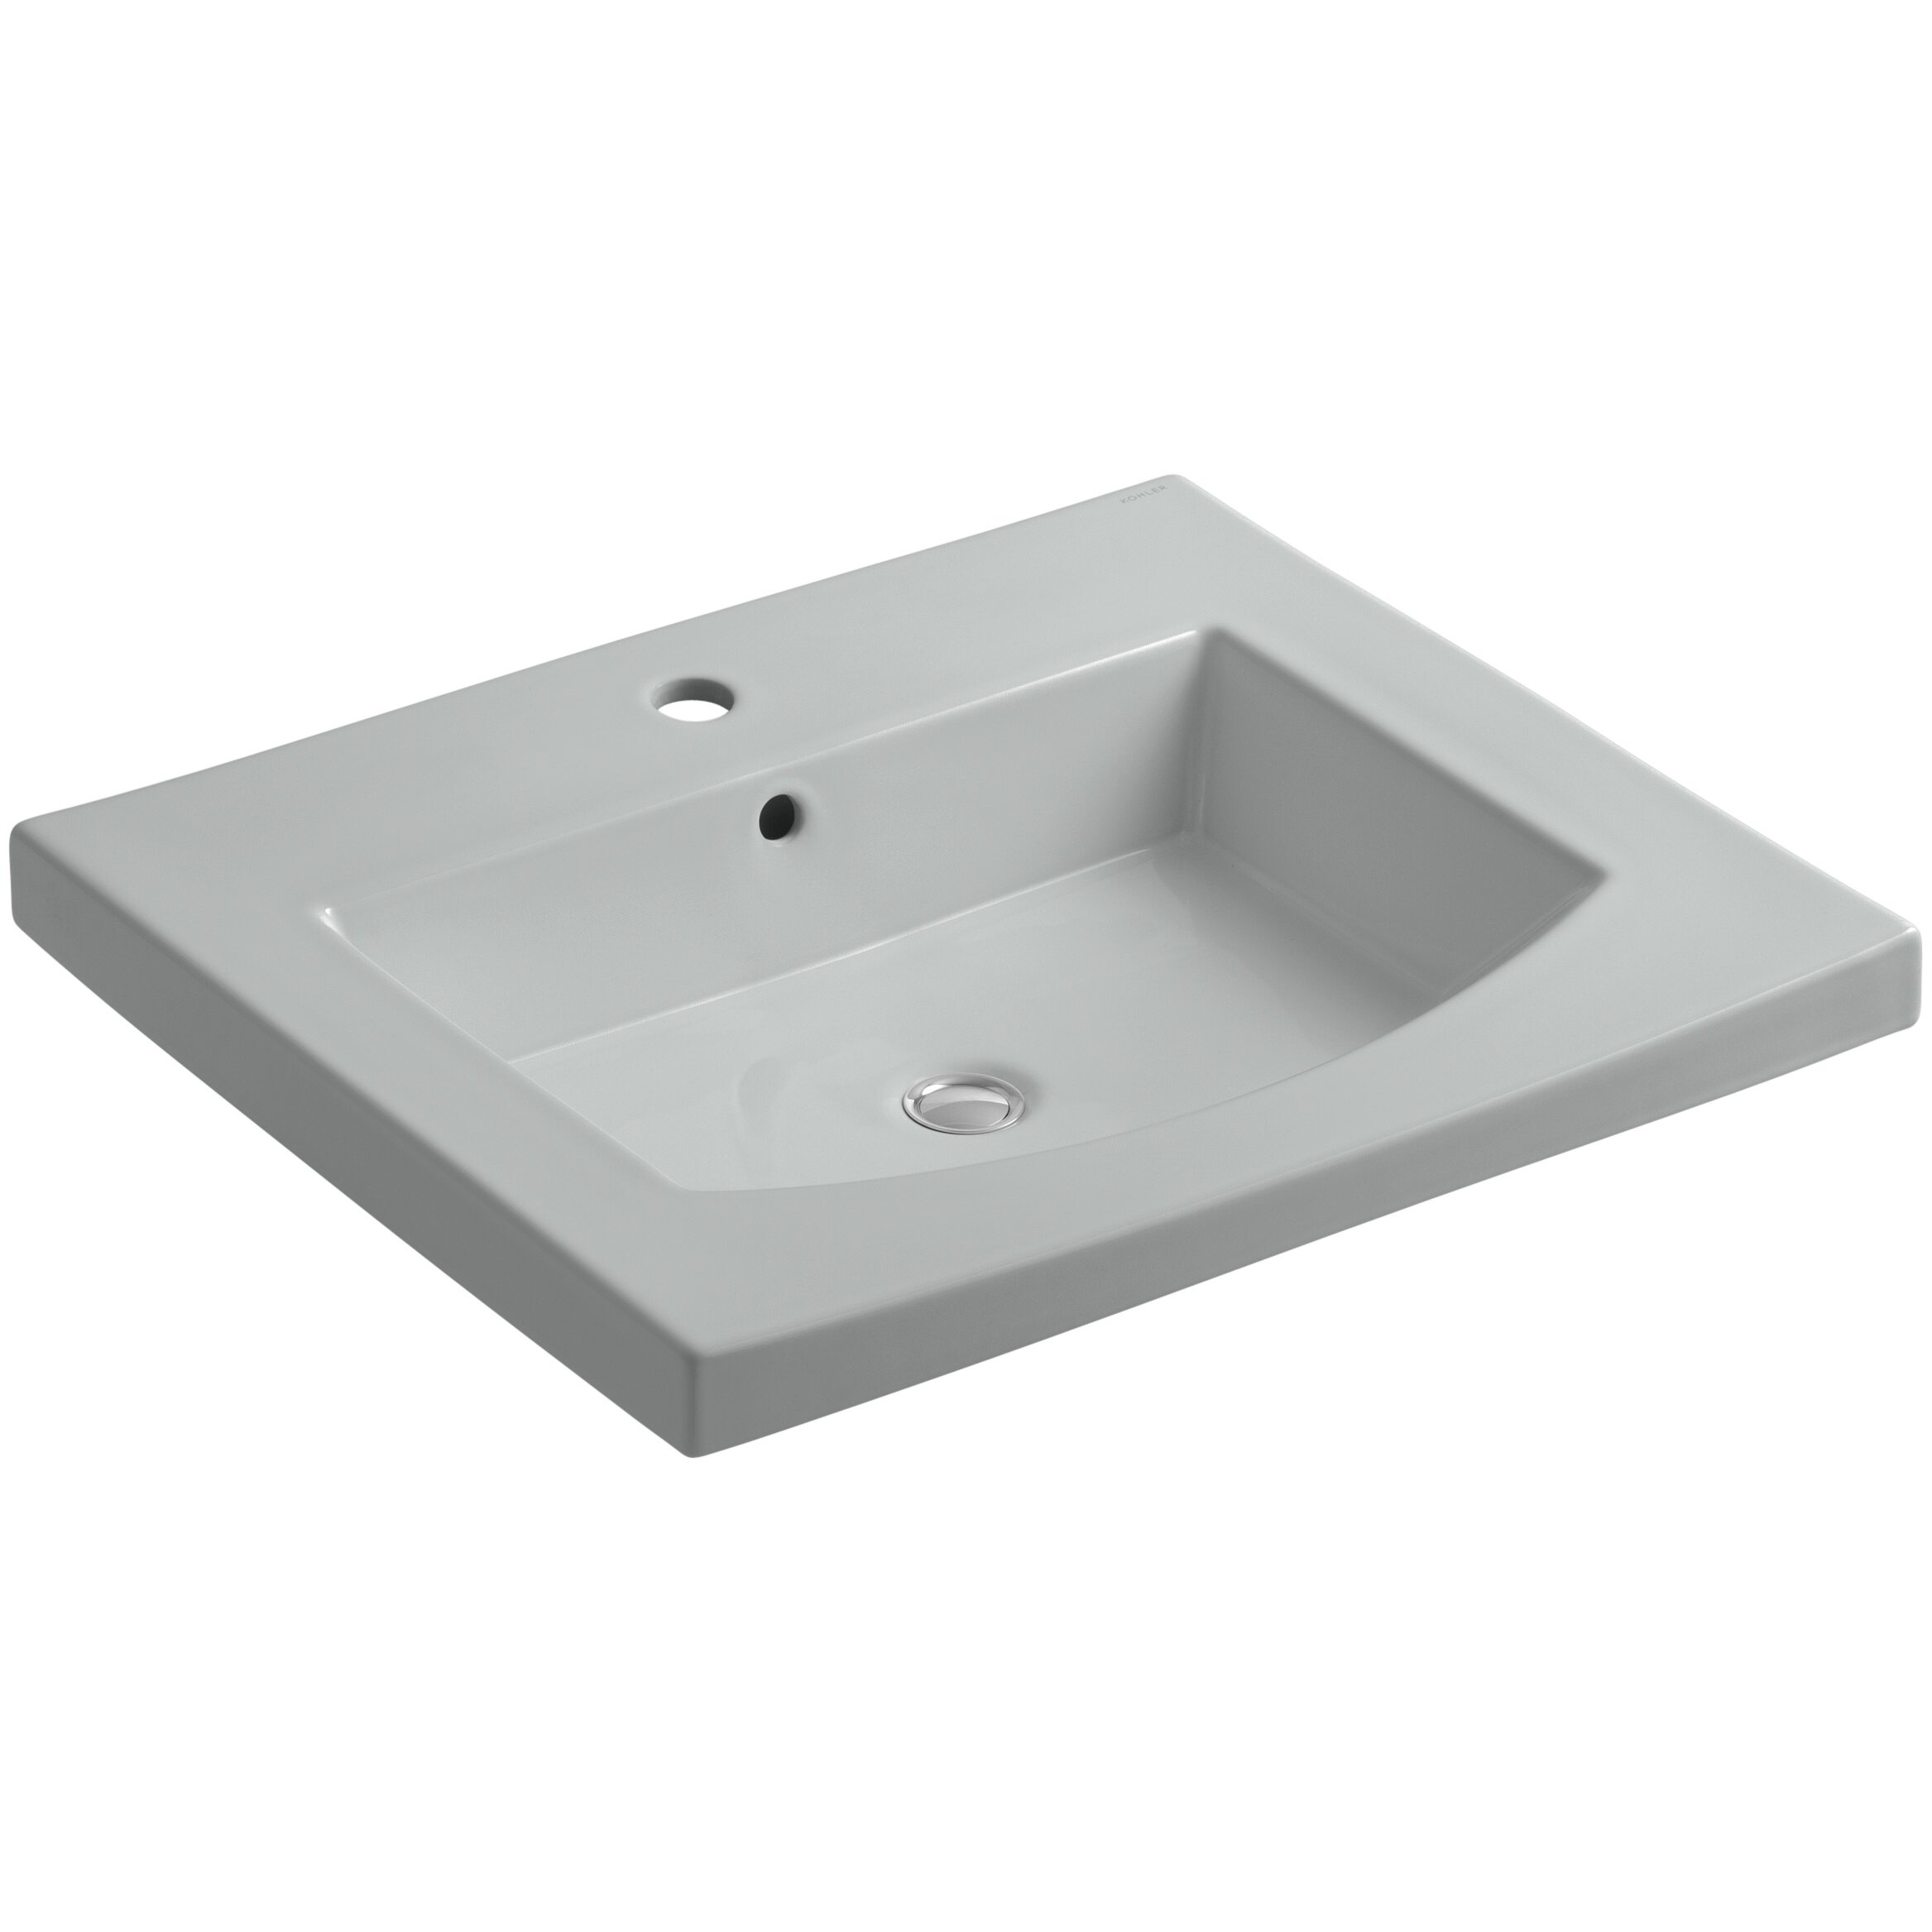 Kohler persuade vanity top bathroom sink with single for Single hole faucet bathroom sink